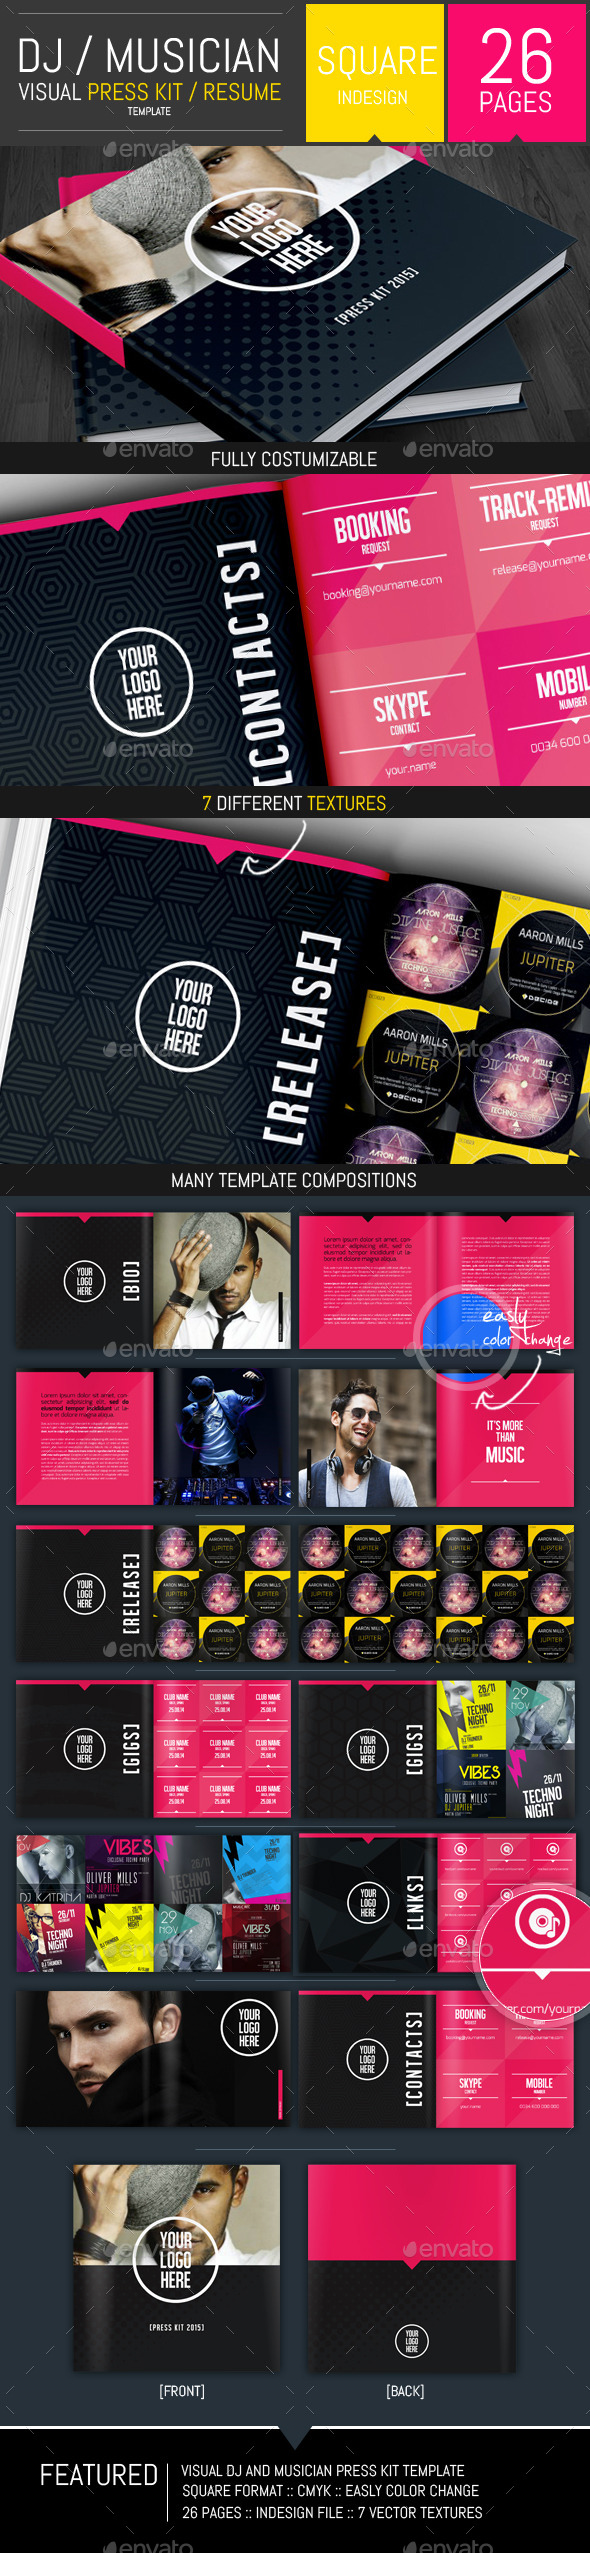 GraphicRiver Dj and Musician Visual Press Kit Resume Template 9945667